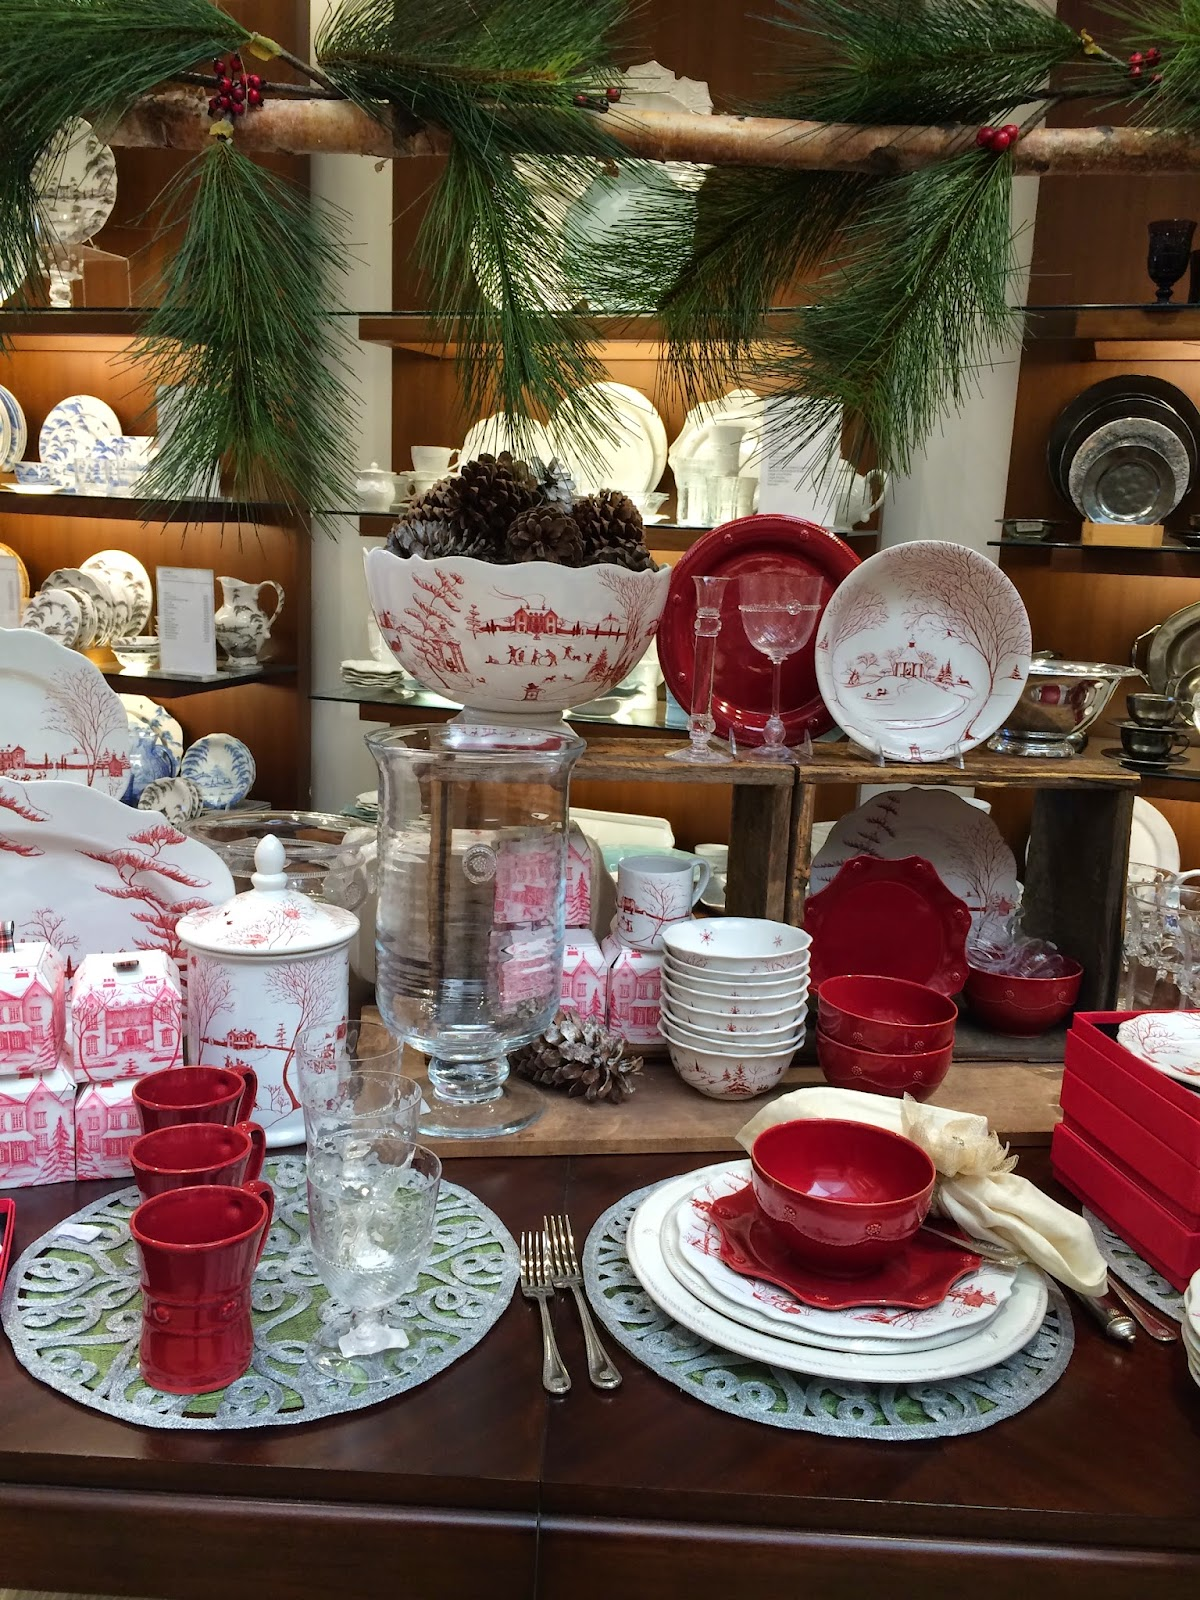 Spotted... Cute Christmas Stuff! - Petite Haus